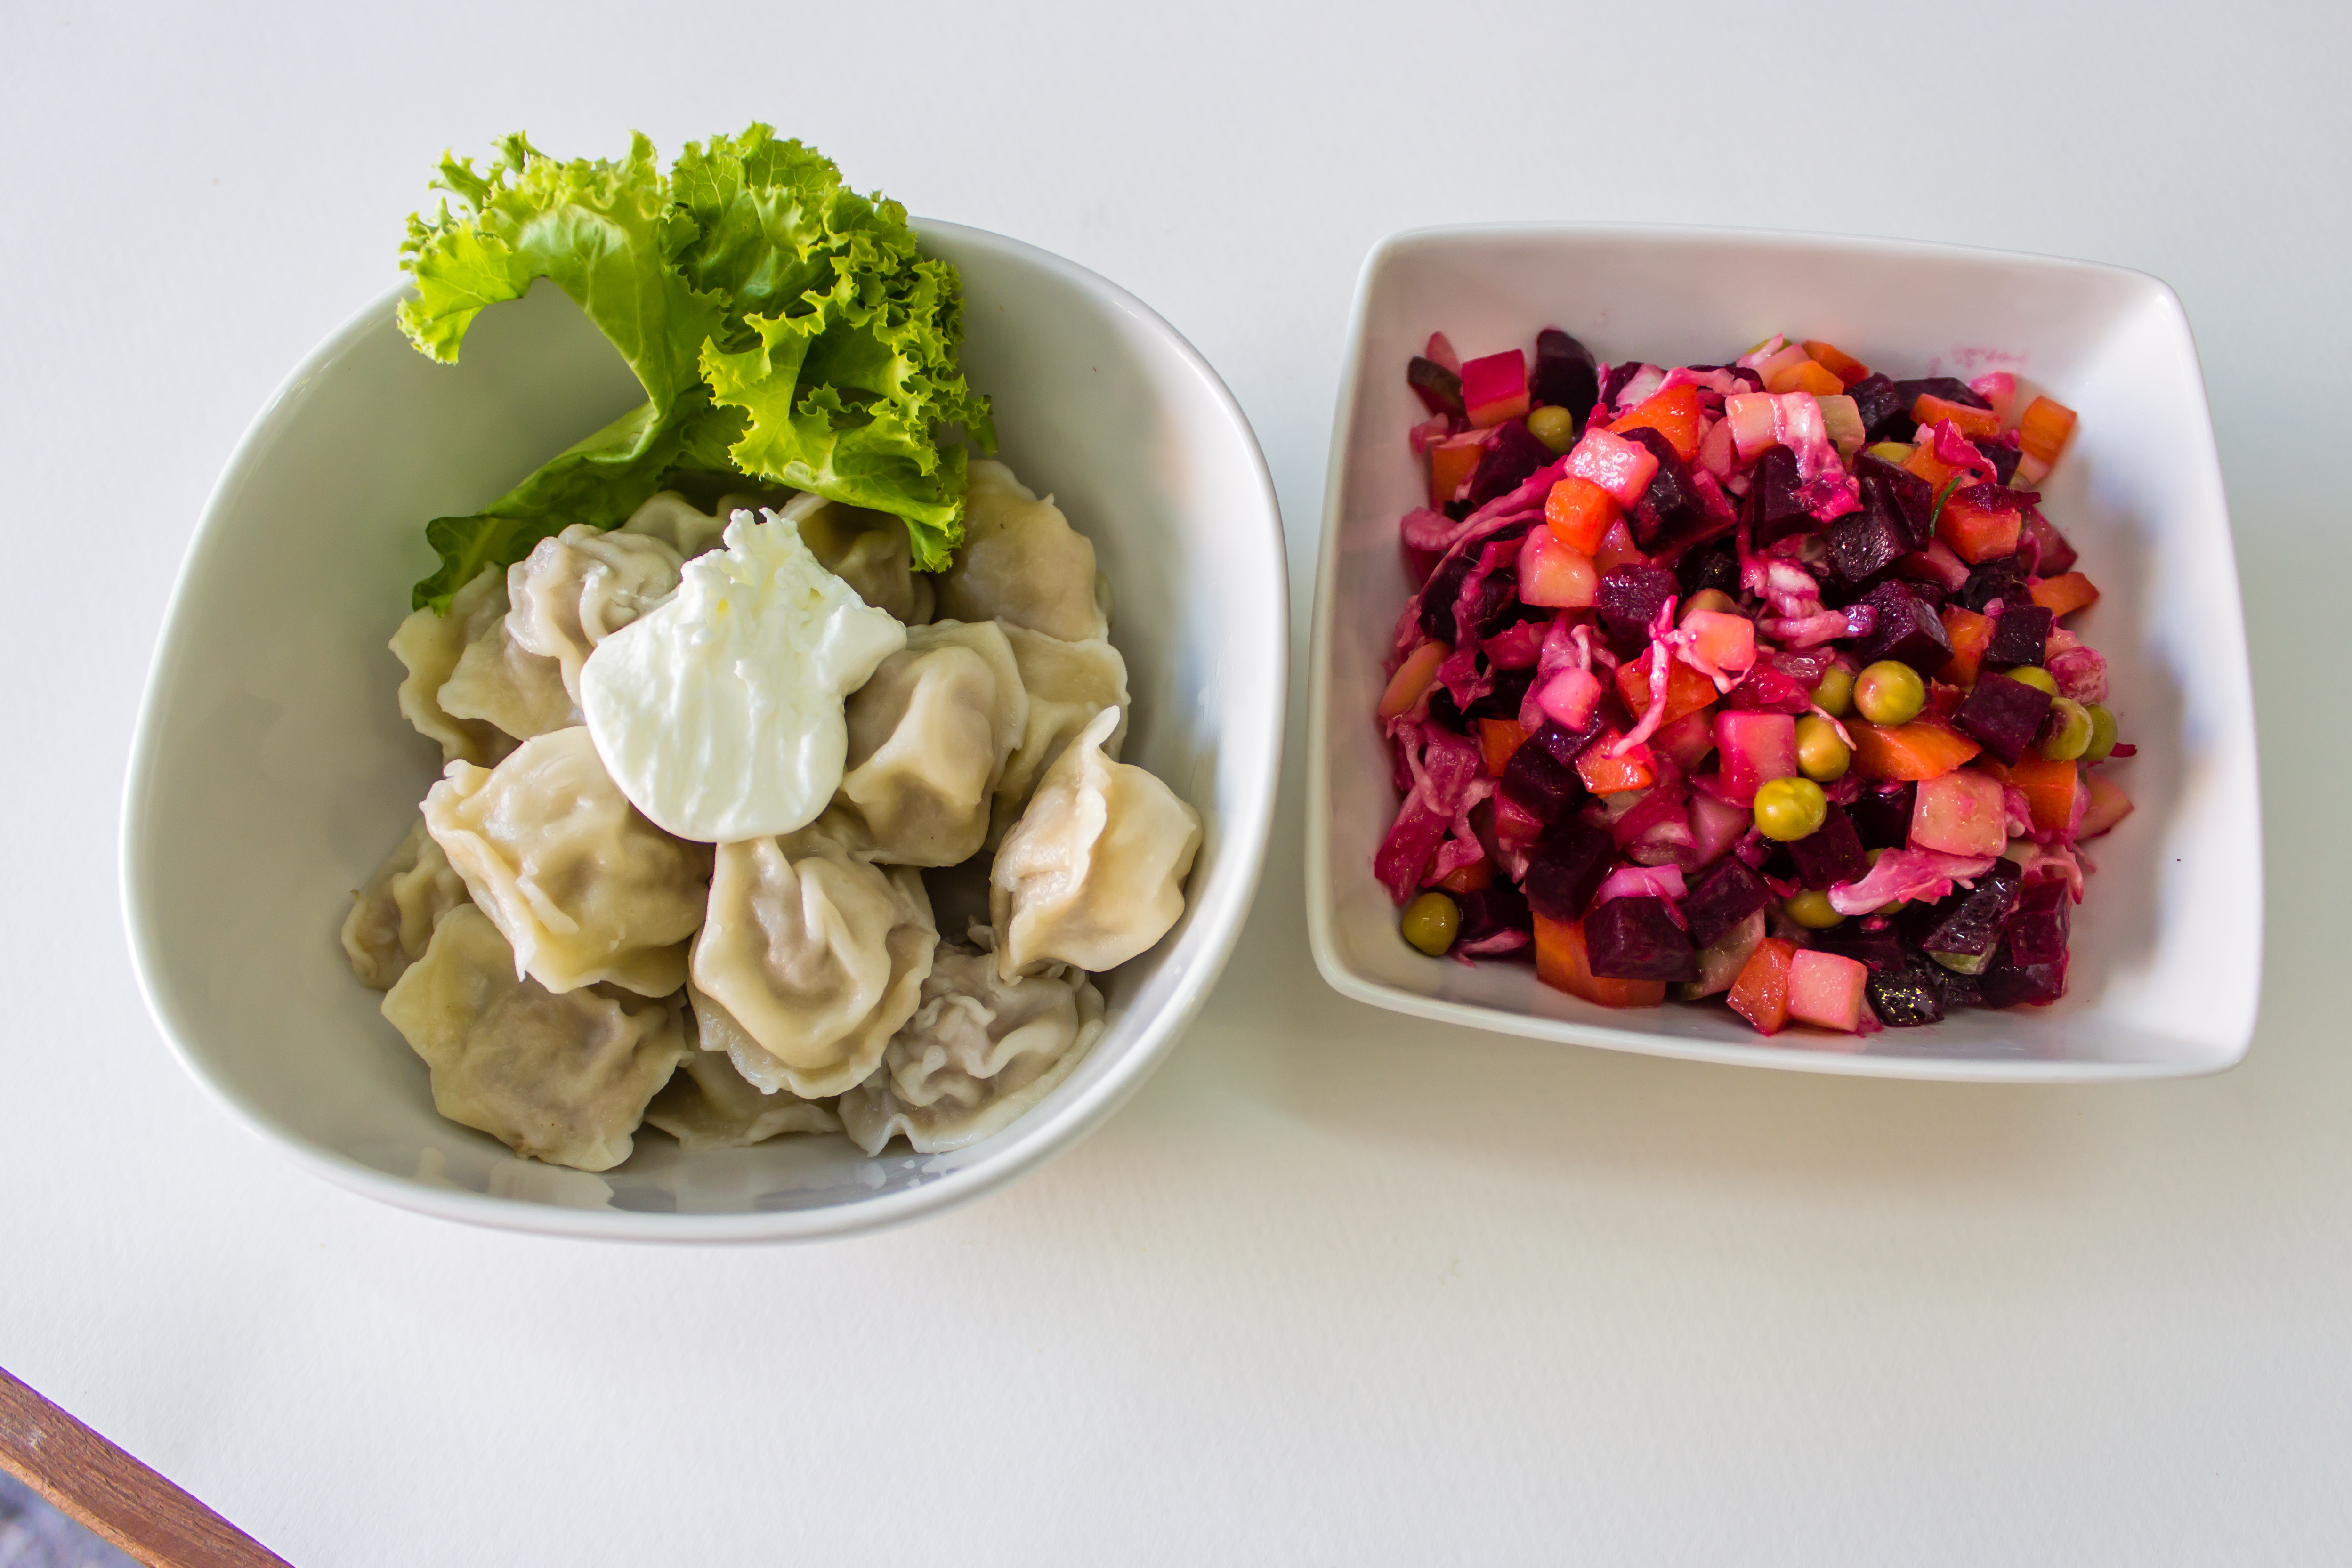 Boiled dumplings (Pelmeni) and vinegert beetroot salad